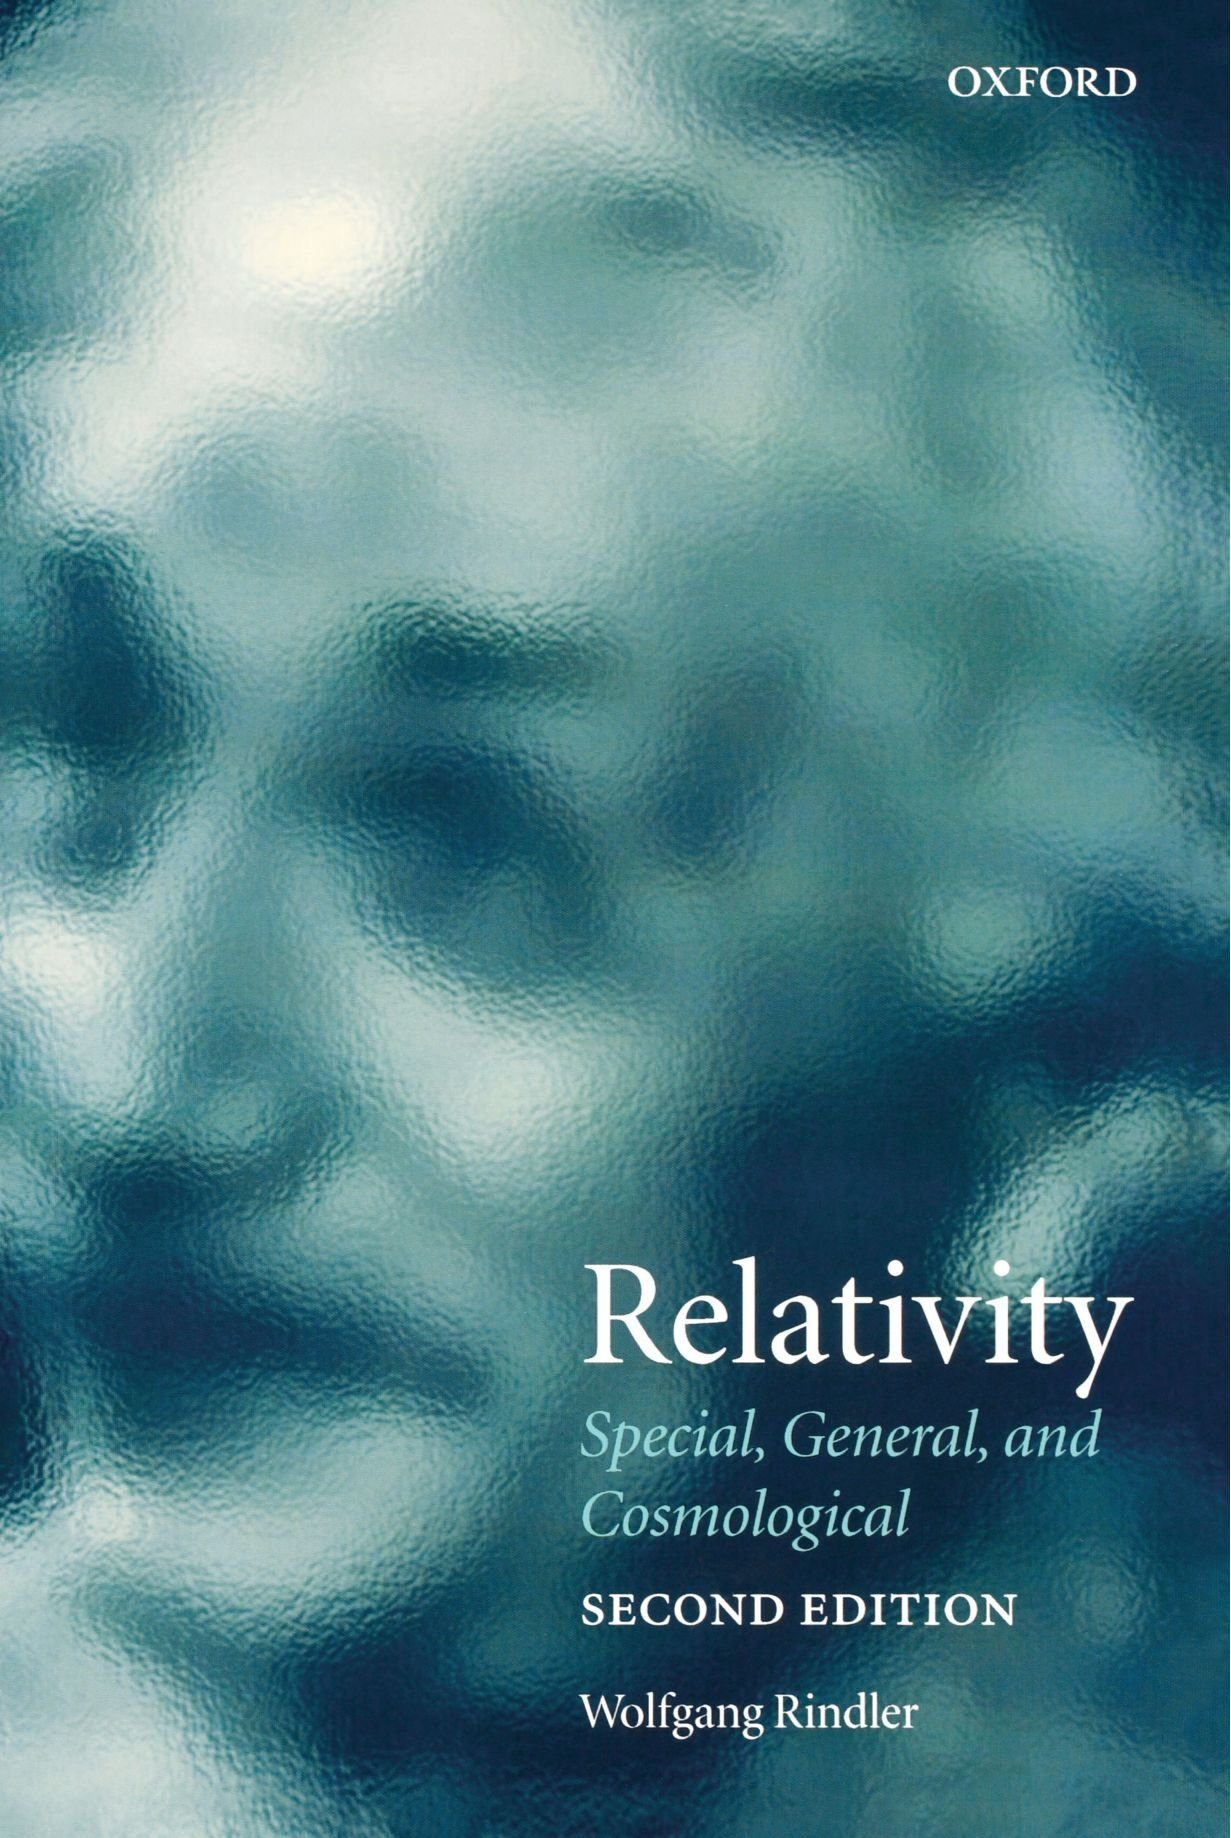 Relativity: Special, General, And Cosmological por Wolfgang Rindler